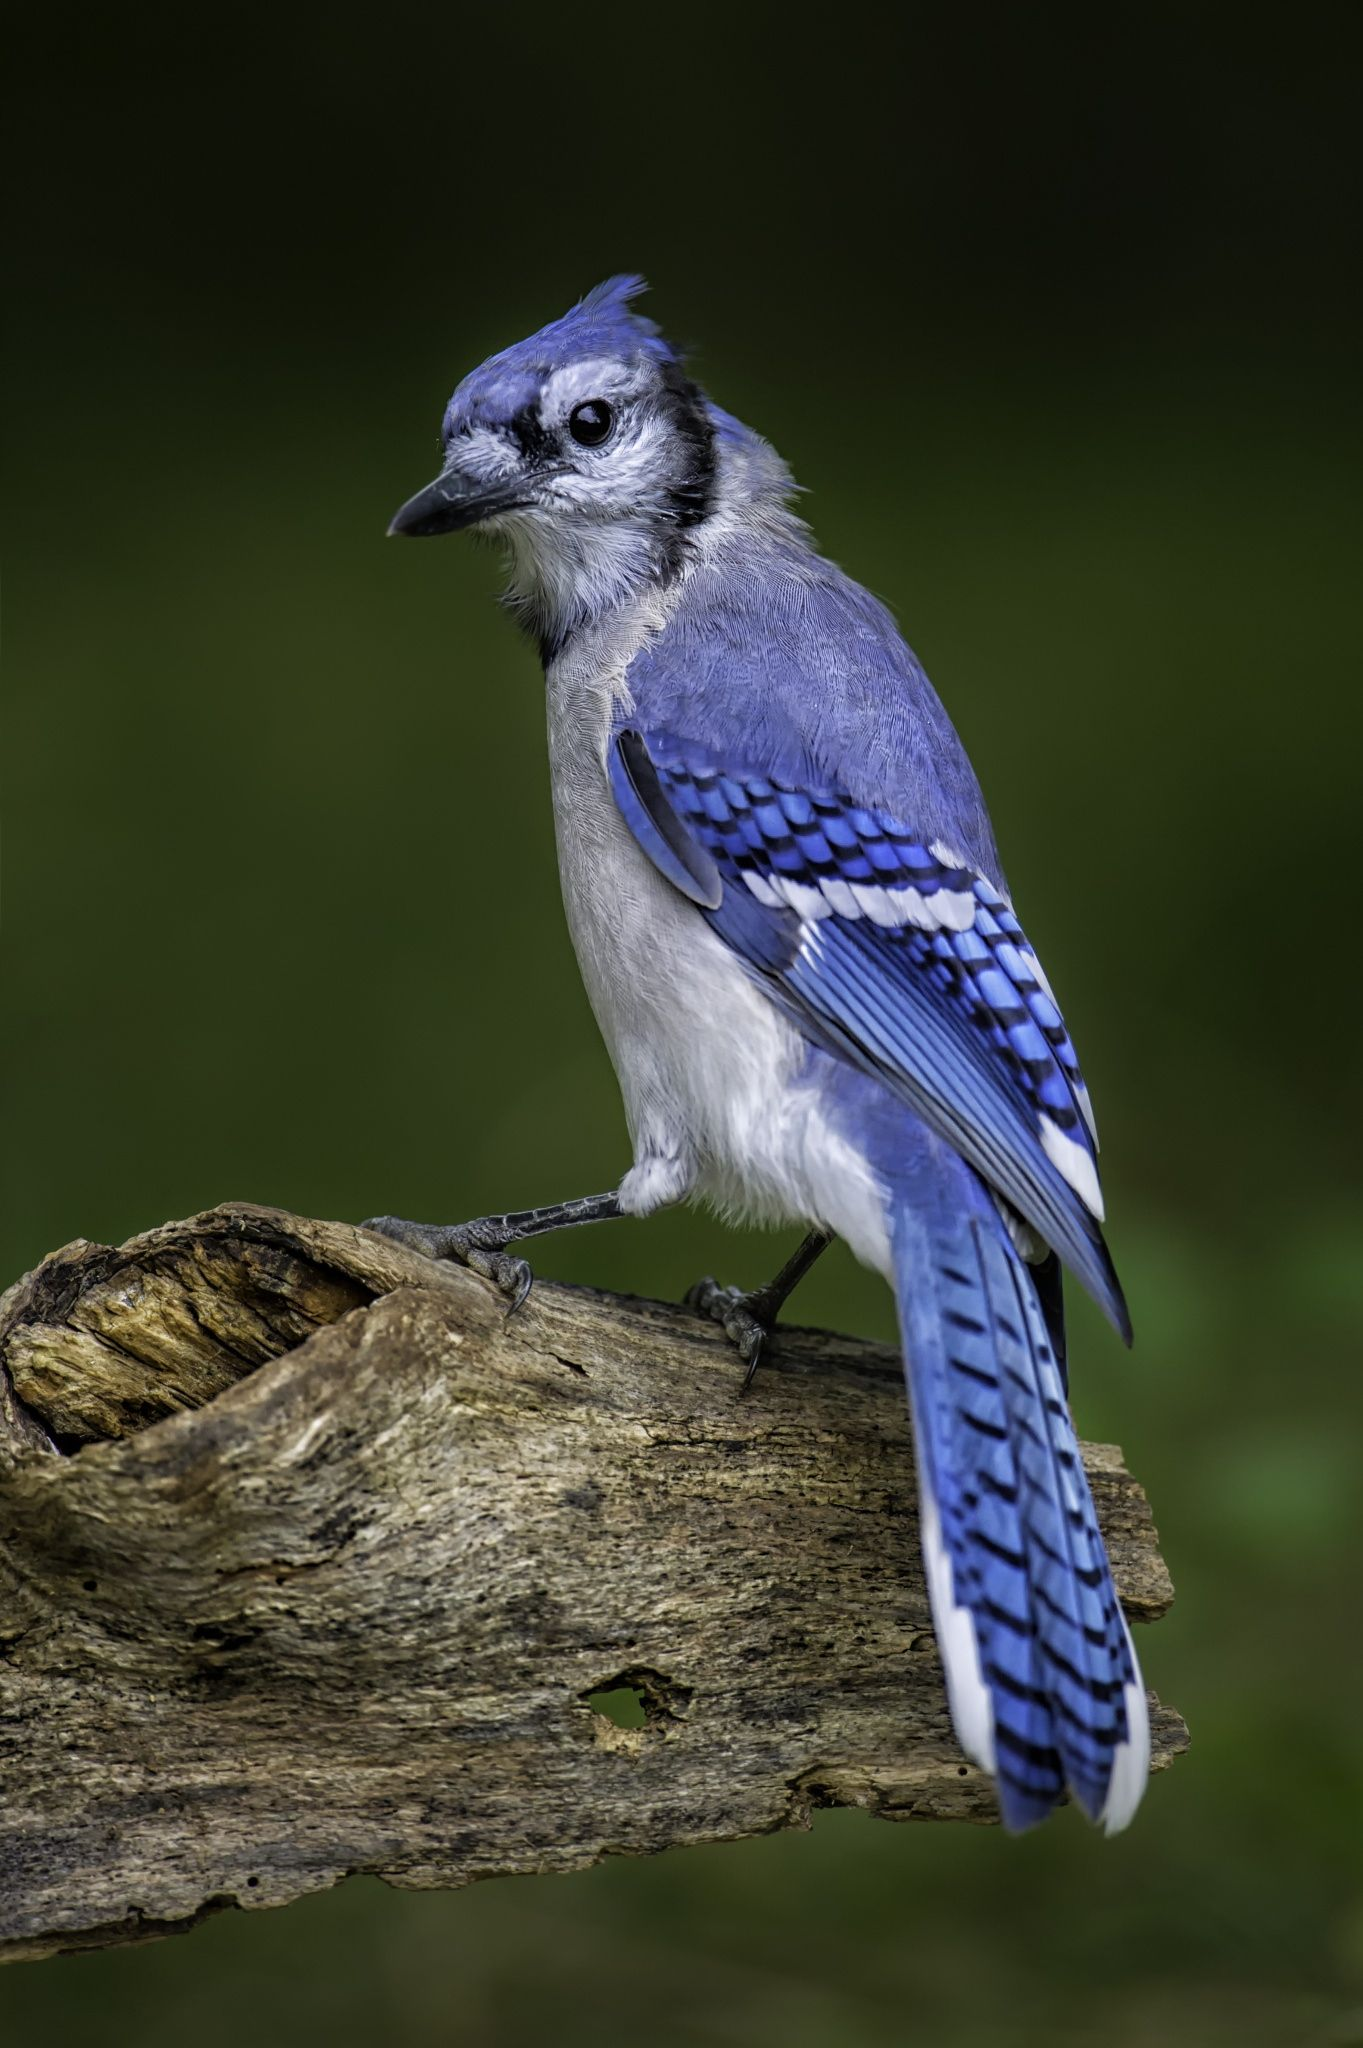 Stumped Blue Jay By Daniel Pa On 500px Ottawa Ontario Canada More